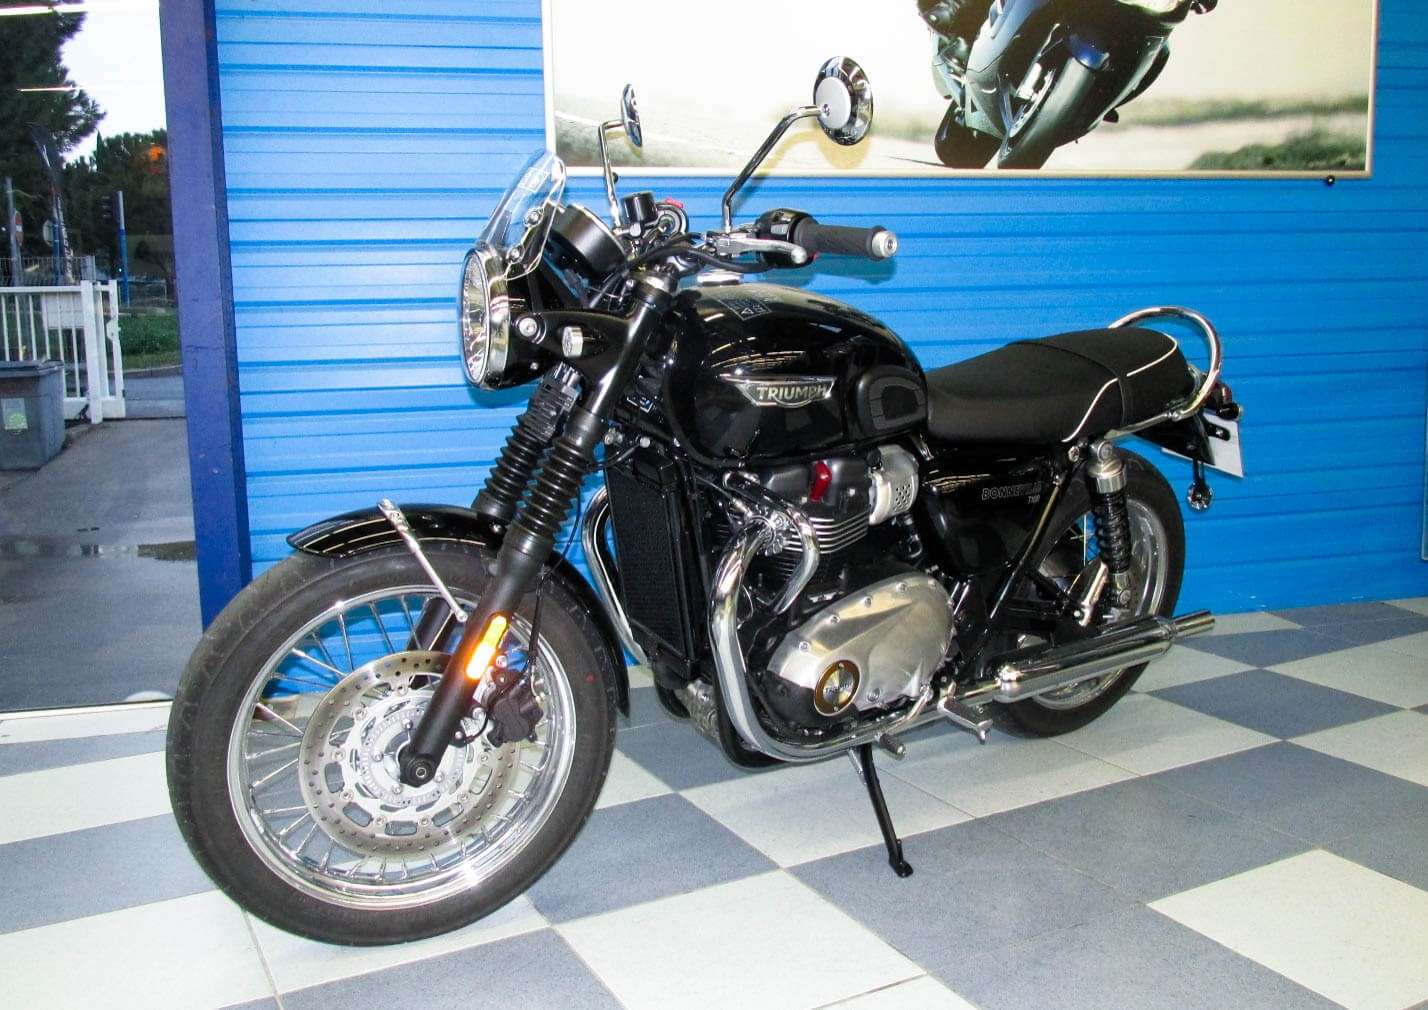 location triumph bonneville t100 montpellier easy renter. Black Bedroom Furniture Sets. Home Design Ideas